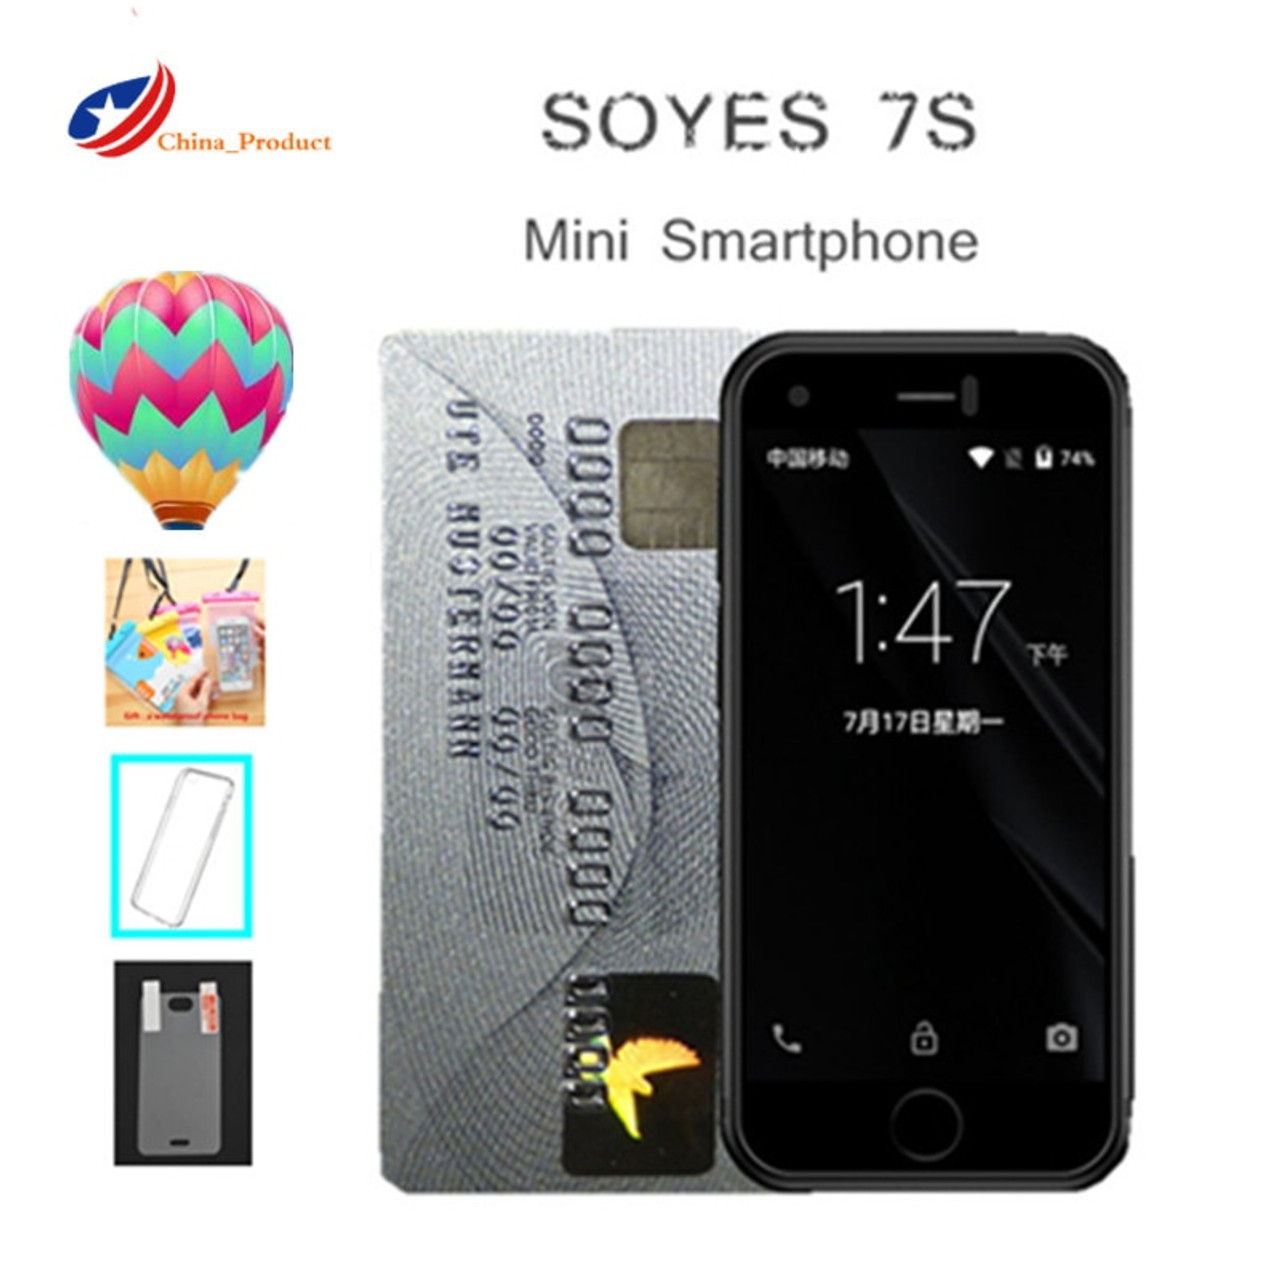 sports shoes 594ba 52a06 Super Mini Smartphone Android Smart Phone Original SOYES 7S 6S Quad Core  1GB+8GB 5.0M Dual SIM Mobile Cell Phones free case gift